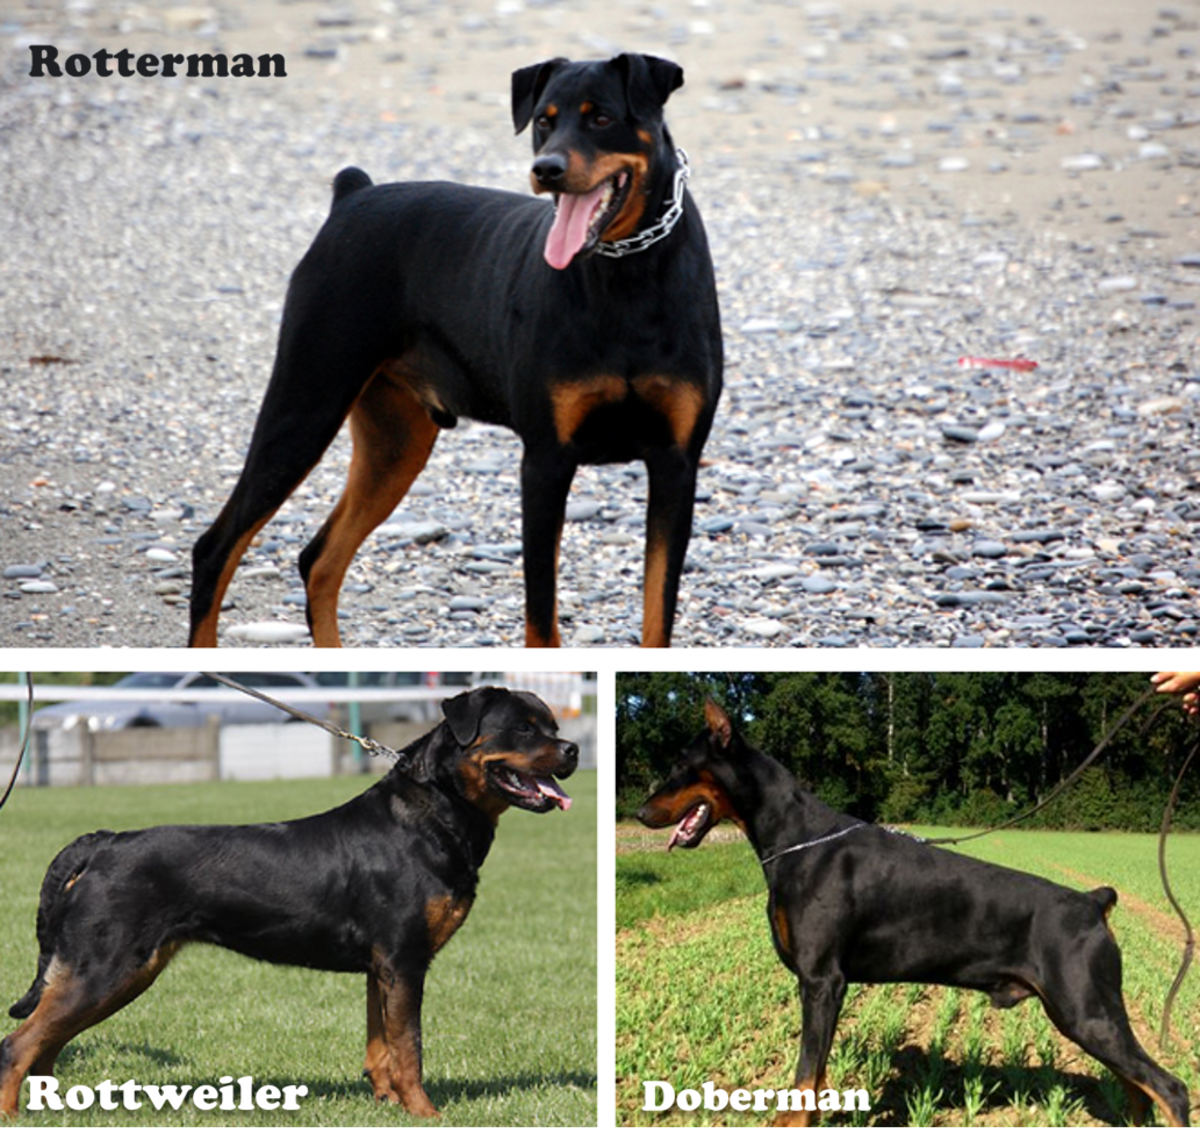 Doberman Pinscher and the Rottweiler mix